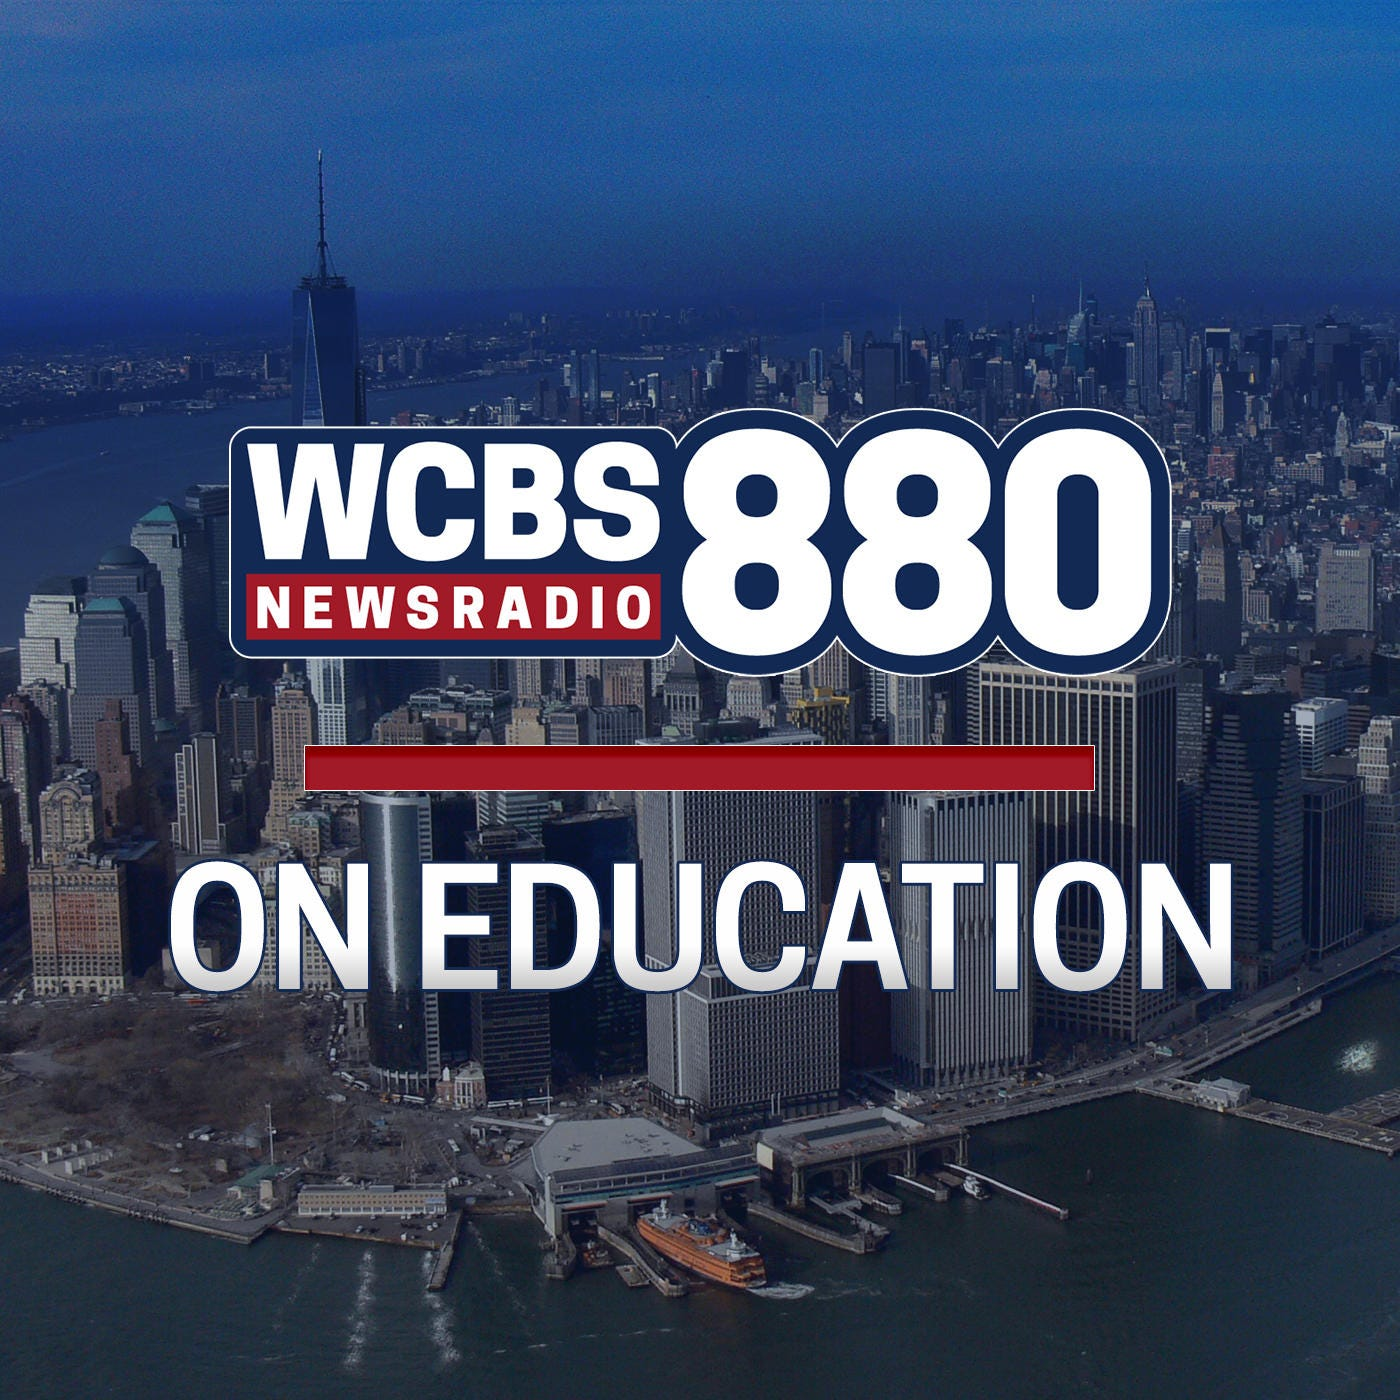 CBS On Education